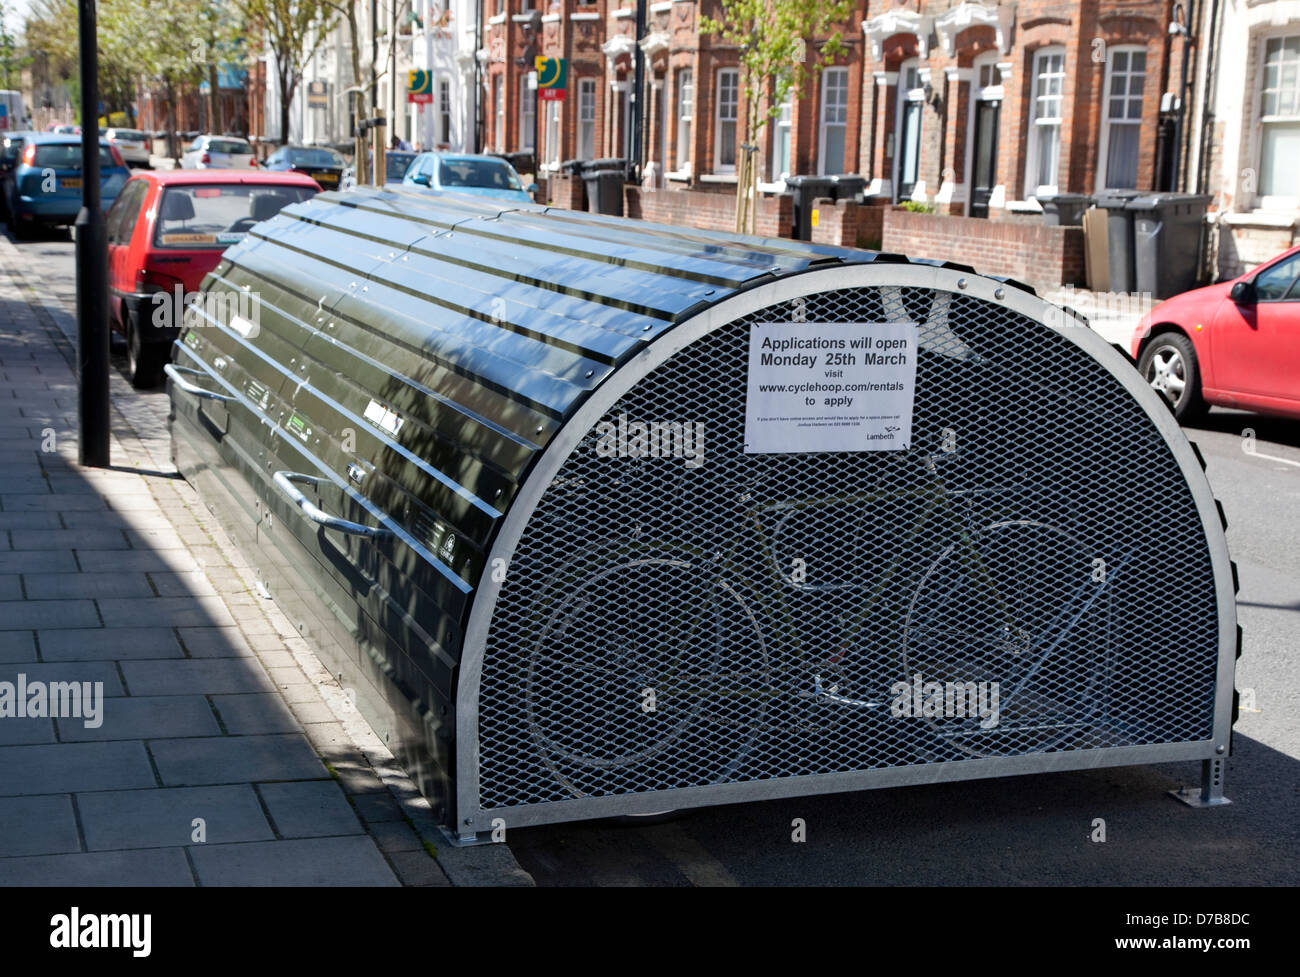 Secure lockable bicycle storage facility in residential street in Stockwell, South London - Stock Image